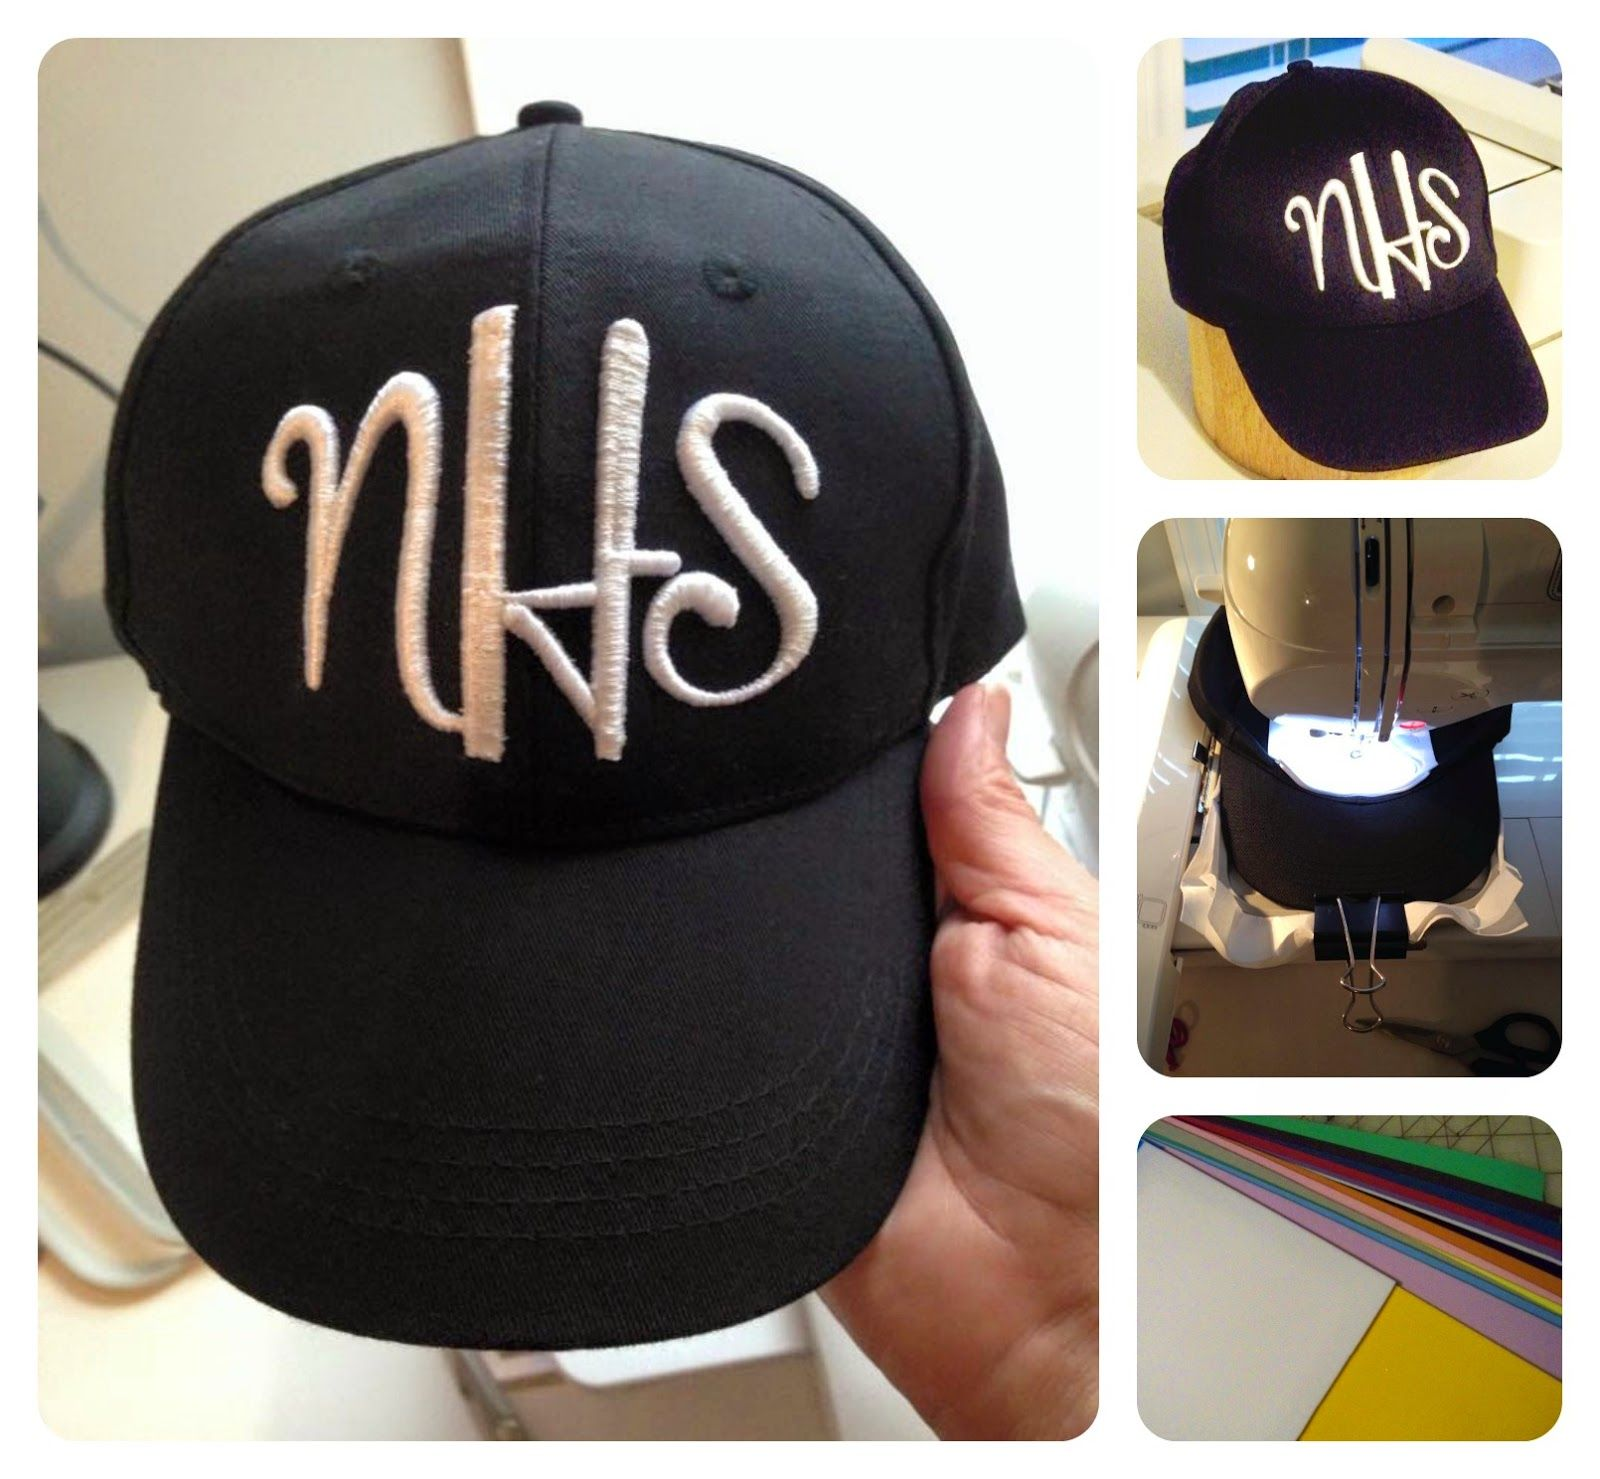 With Glittering Eyes: Baseball Cap Embroidery Using